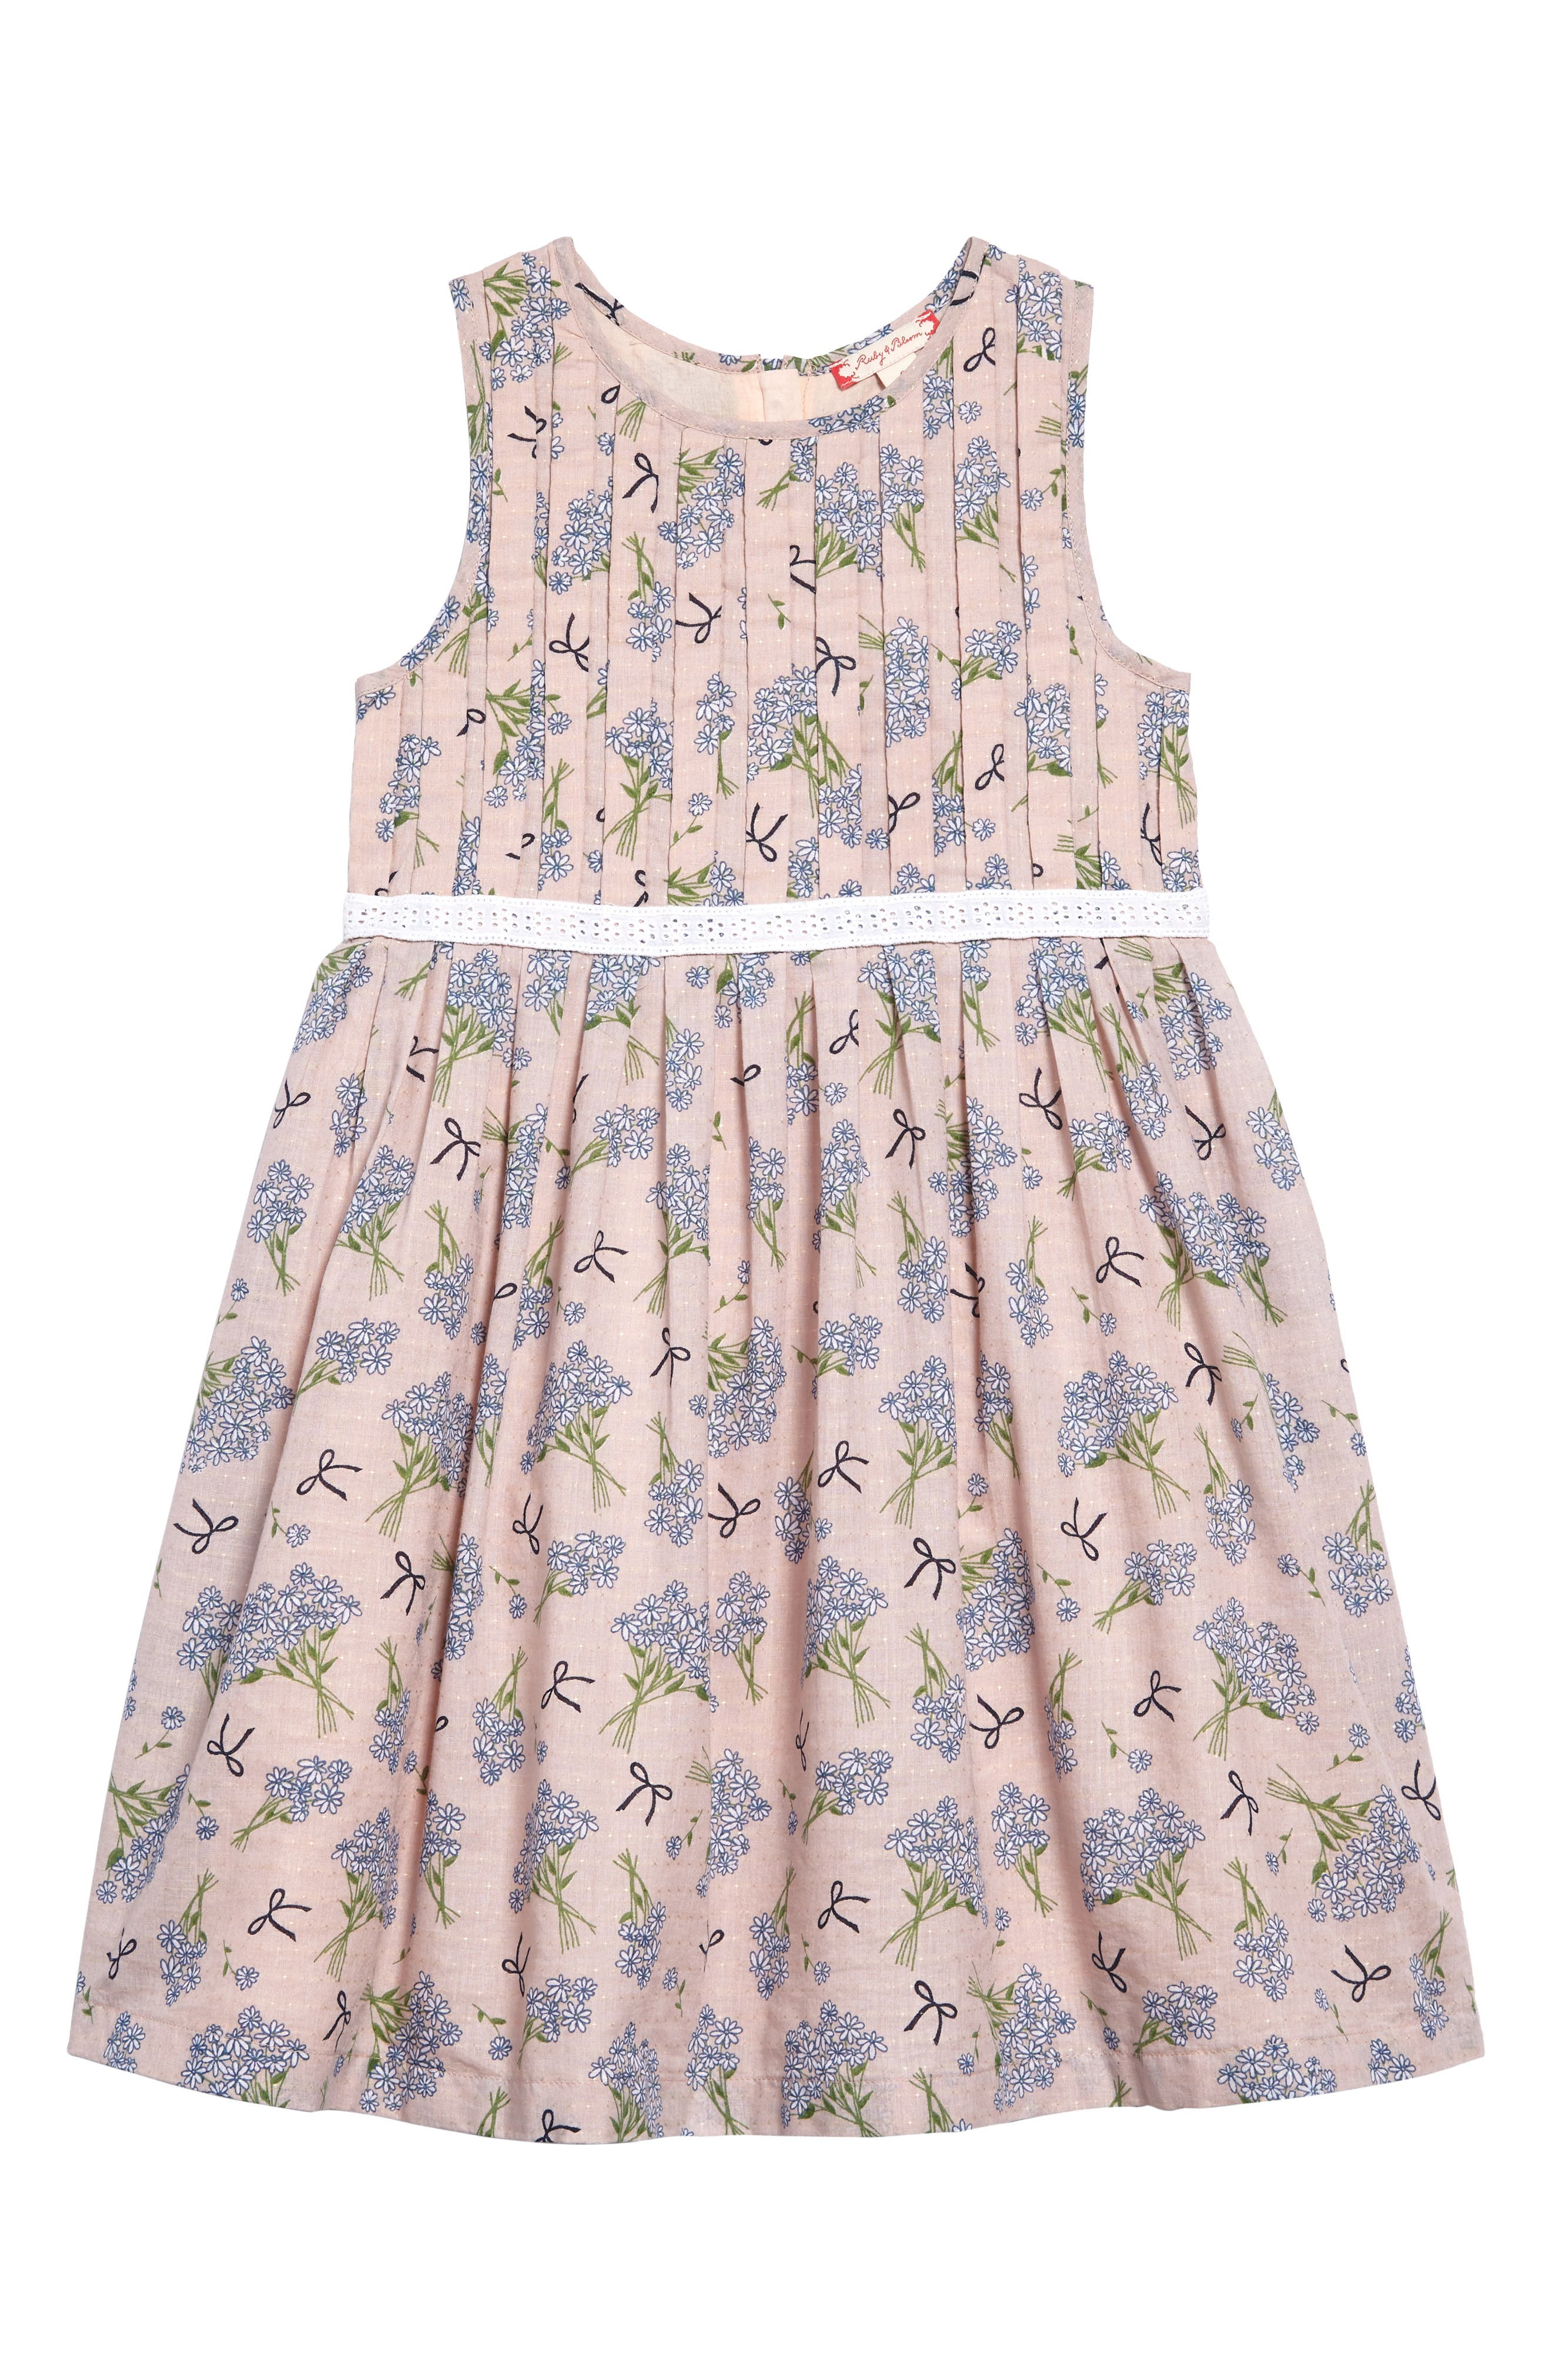 Dobby Floral Pleat Dress,                             Main thumbnail 1, color,                             Pink Peach Spring Floral